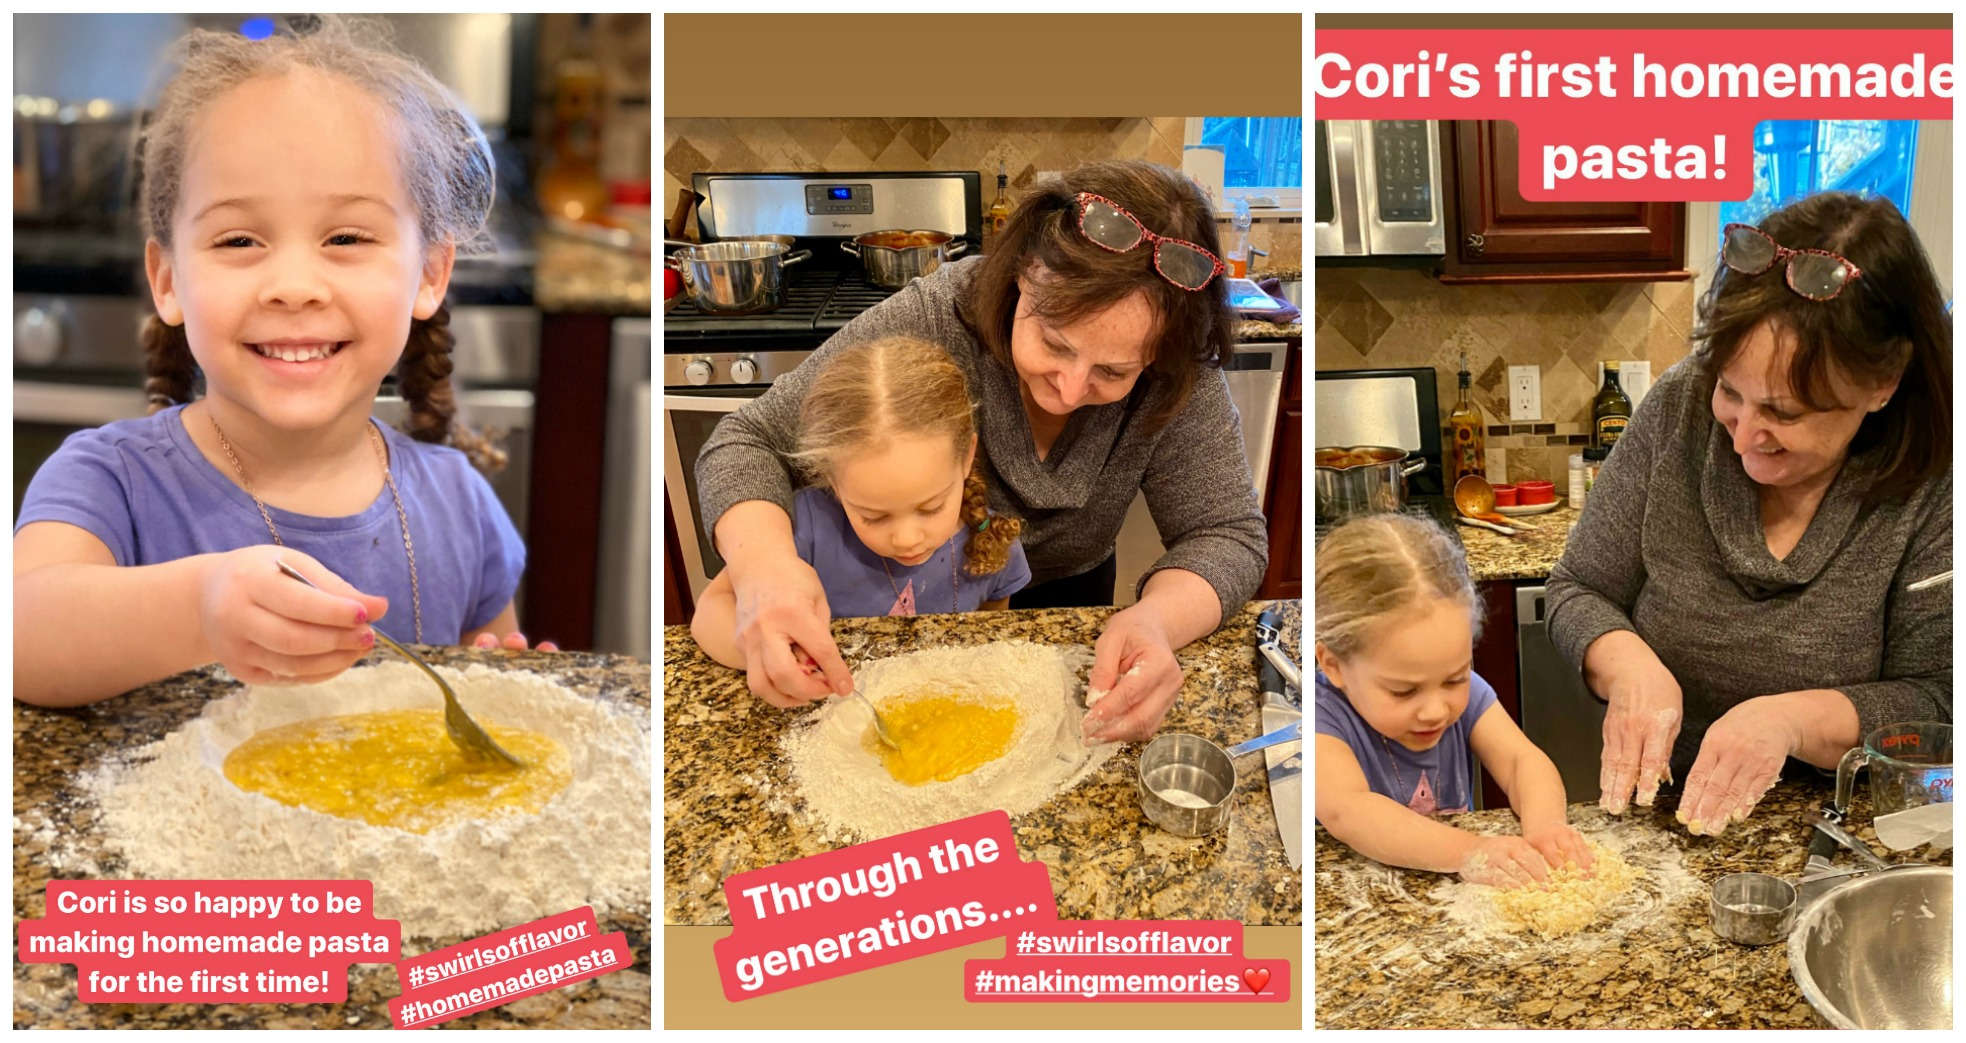 Making homemade pasta with Cori